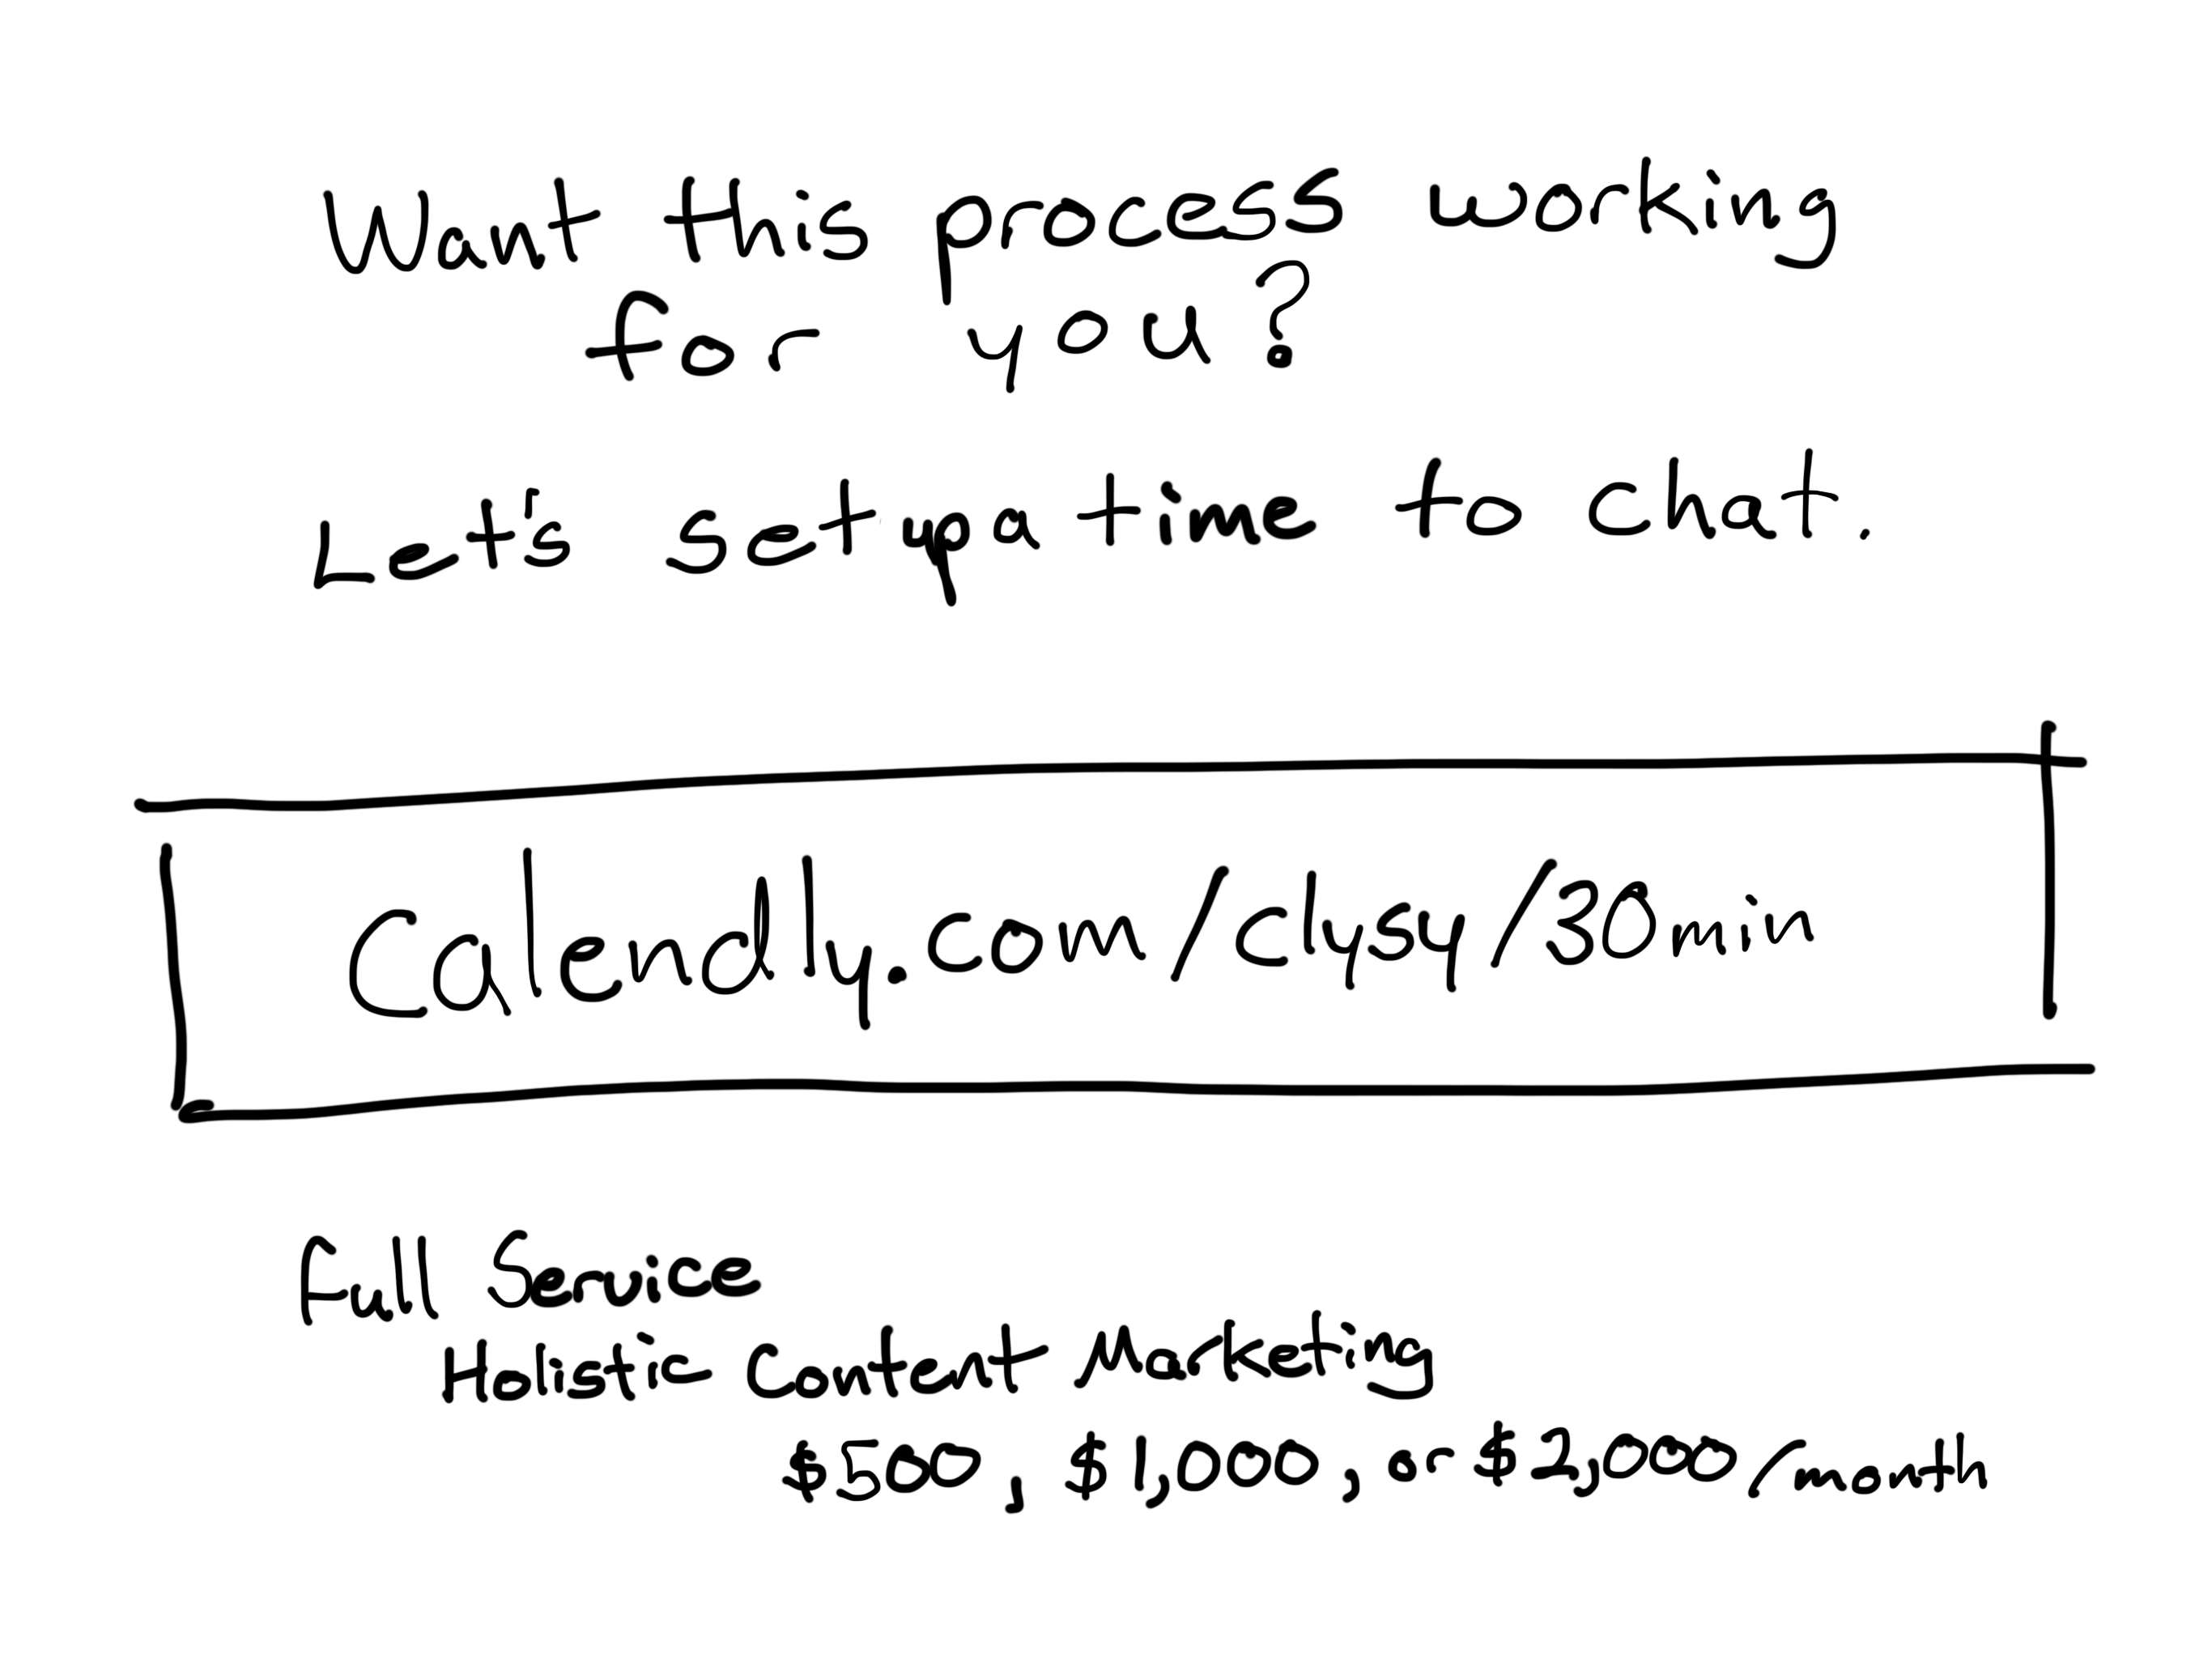 Want this process working for you? Let's setup a time to chat.